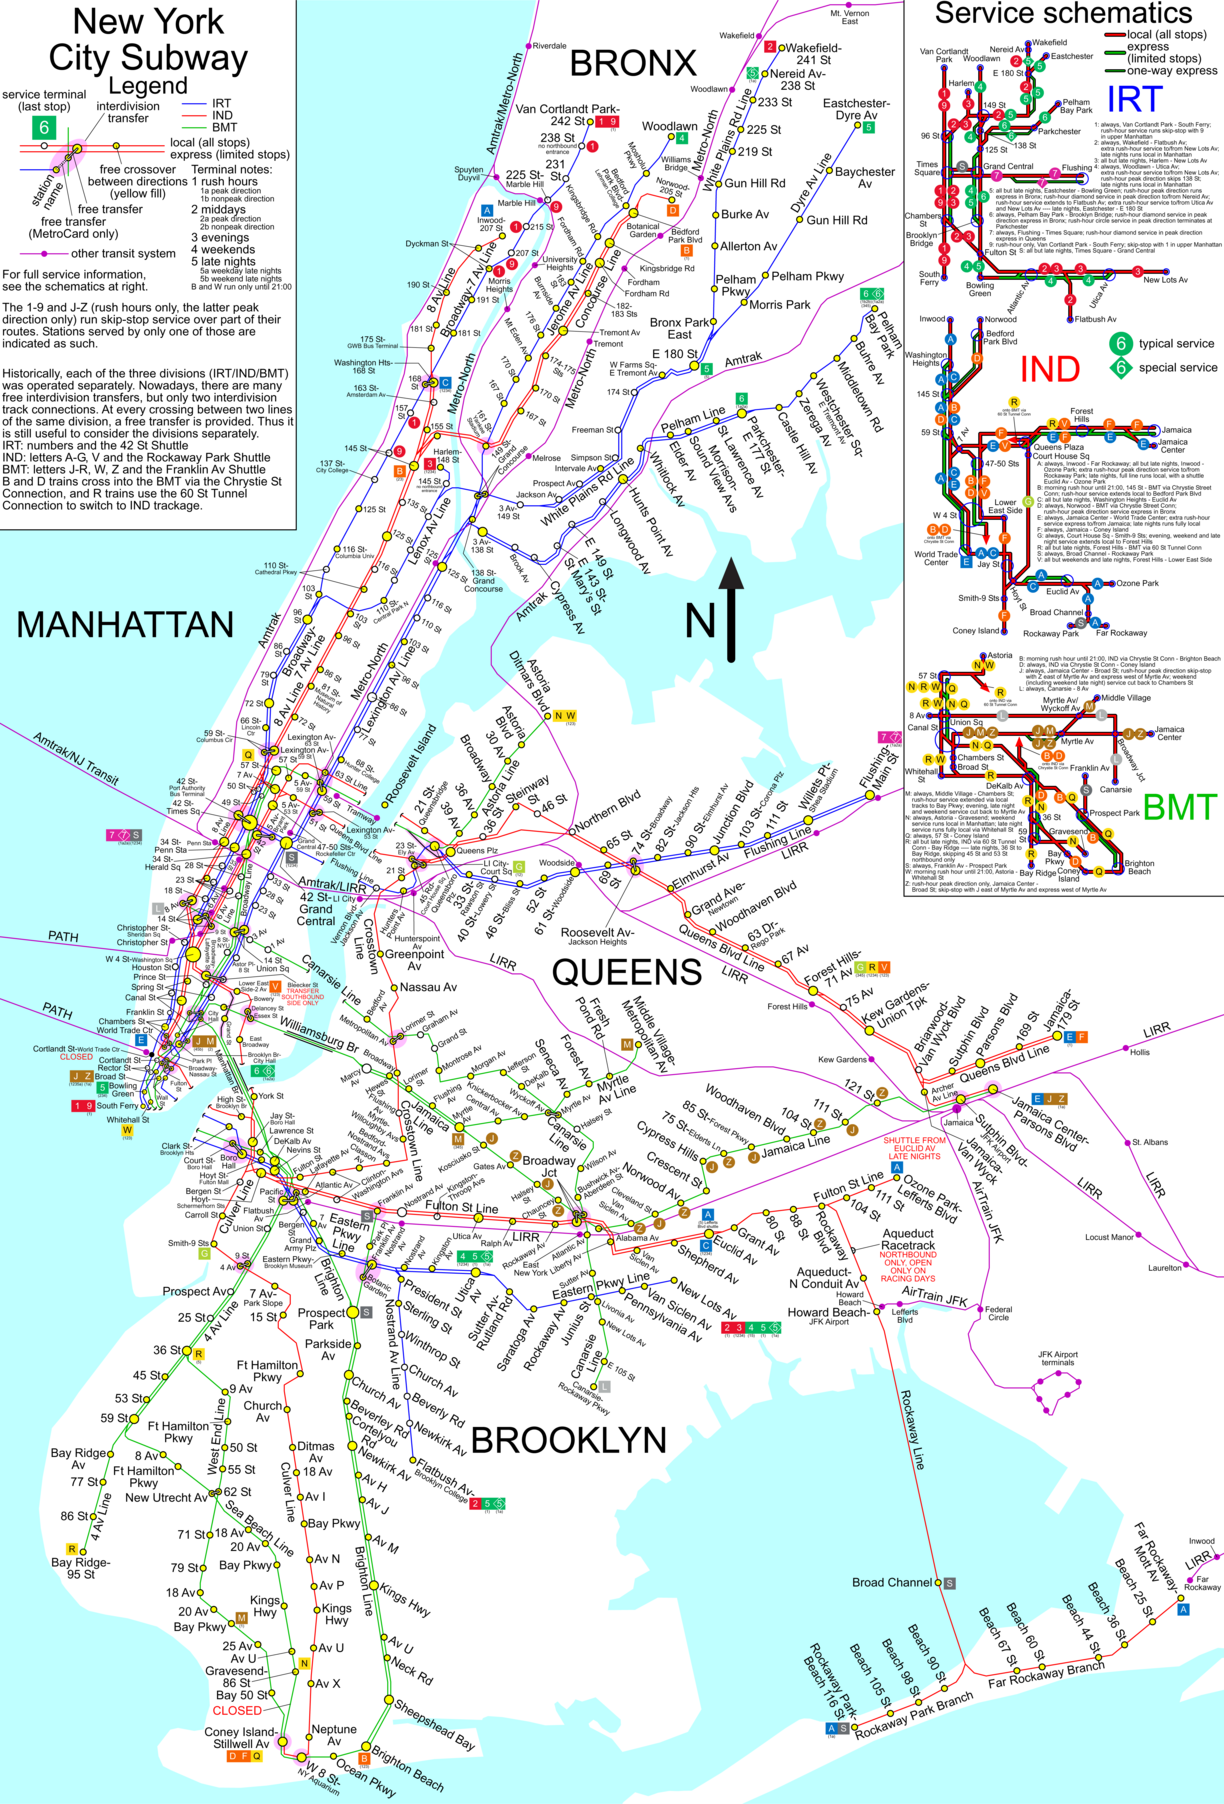 Ny York Subway Map.Www Nycsubway Org New York City Subway Route Map By Spui